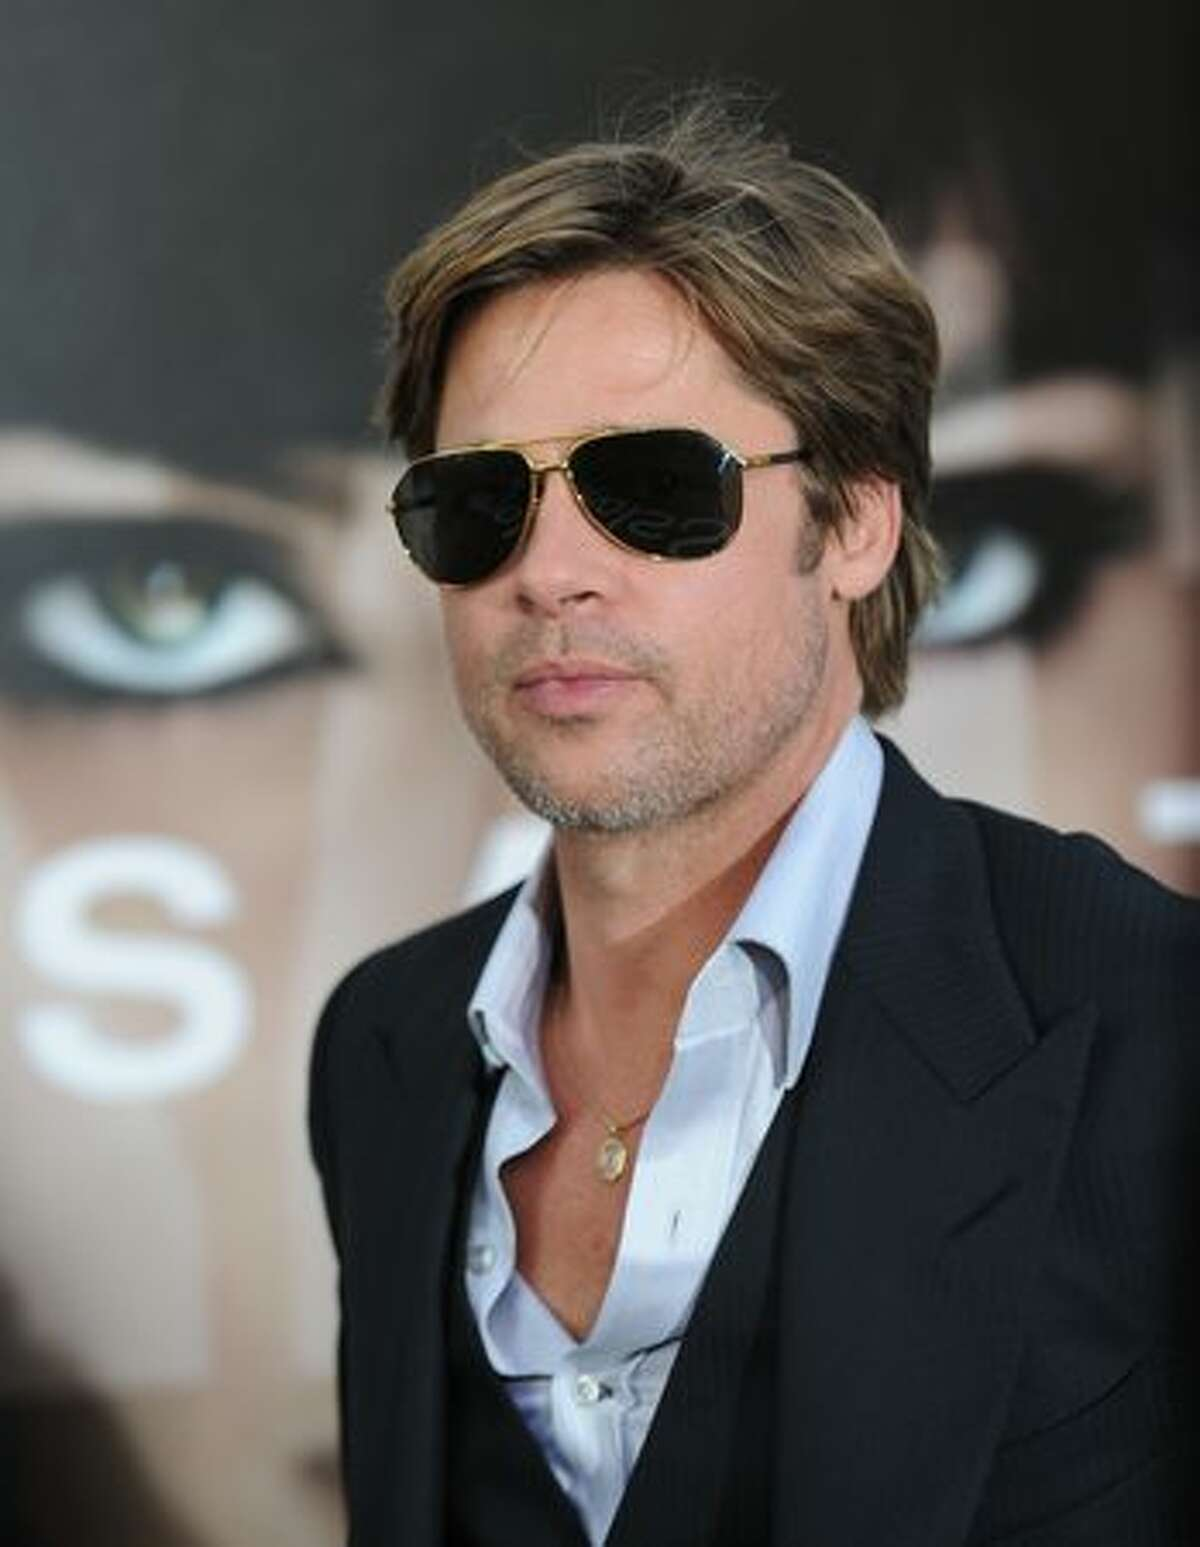 Actor Brad Pitt arrives at the premiere of